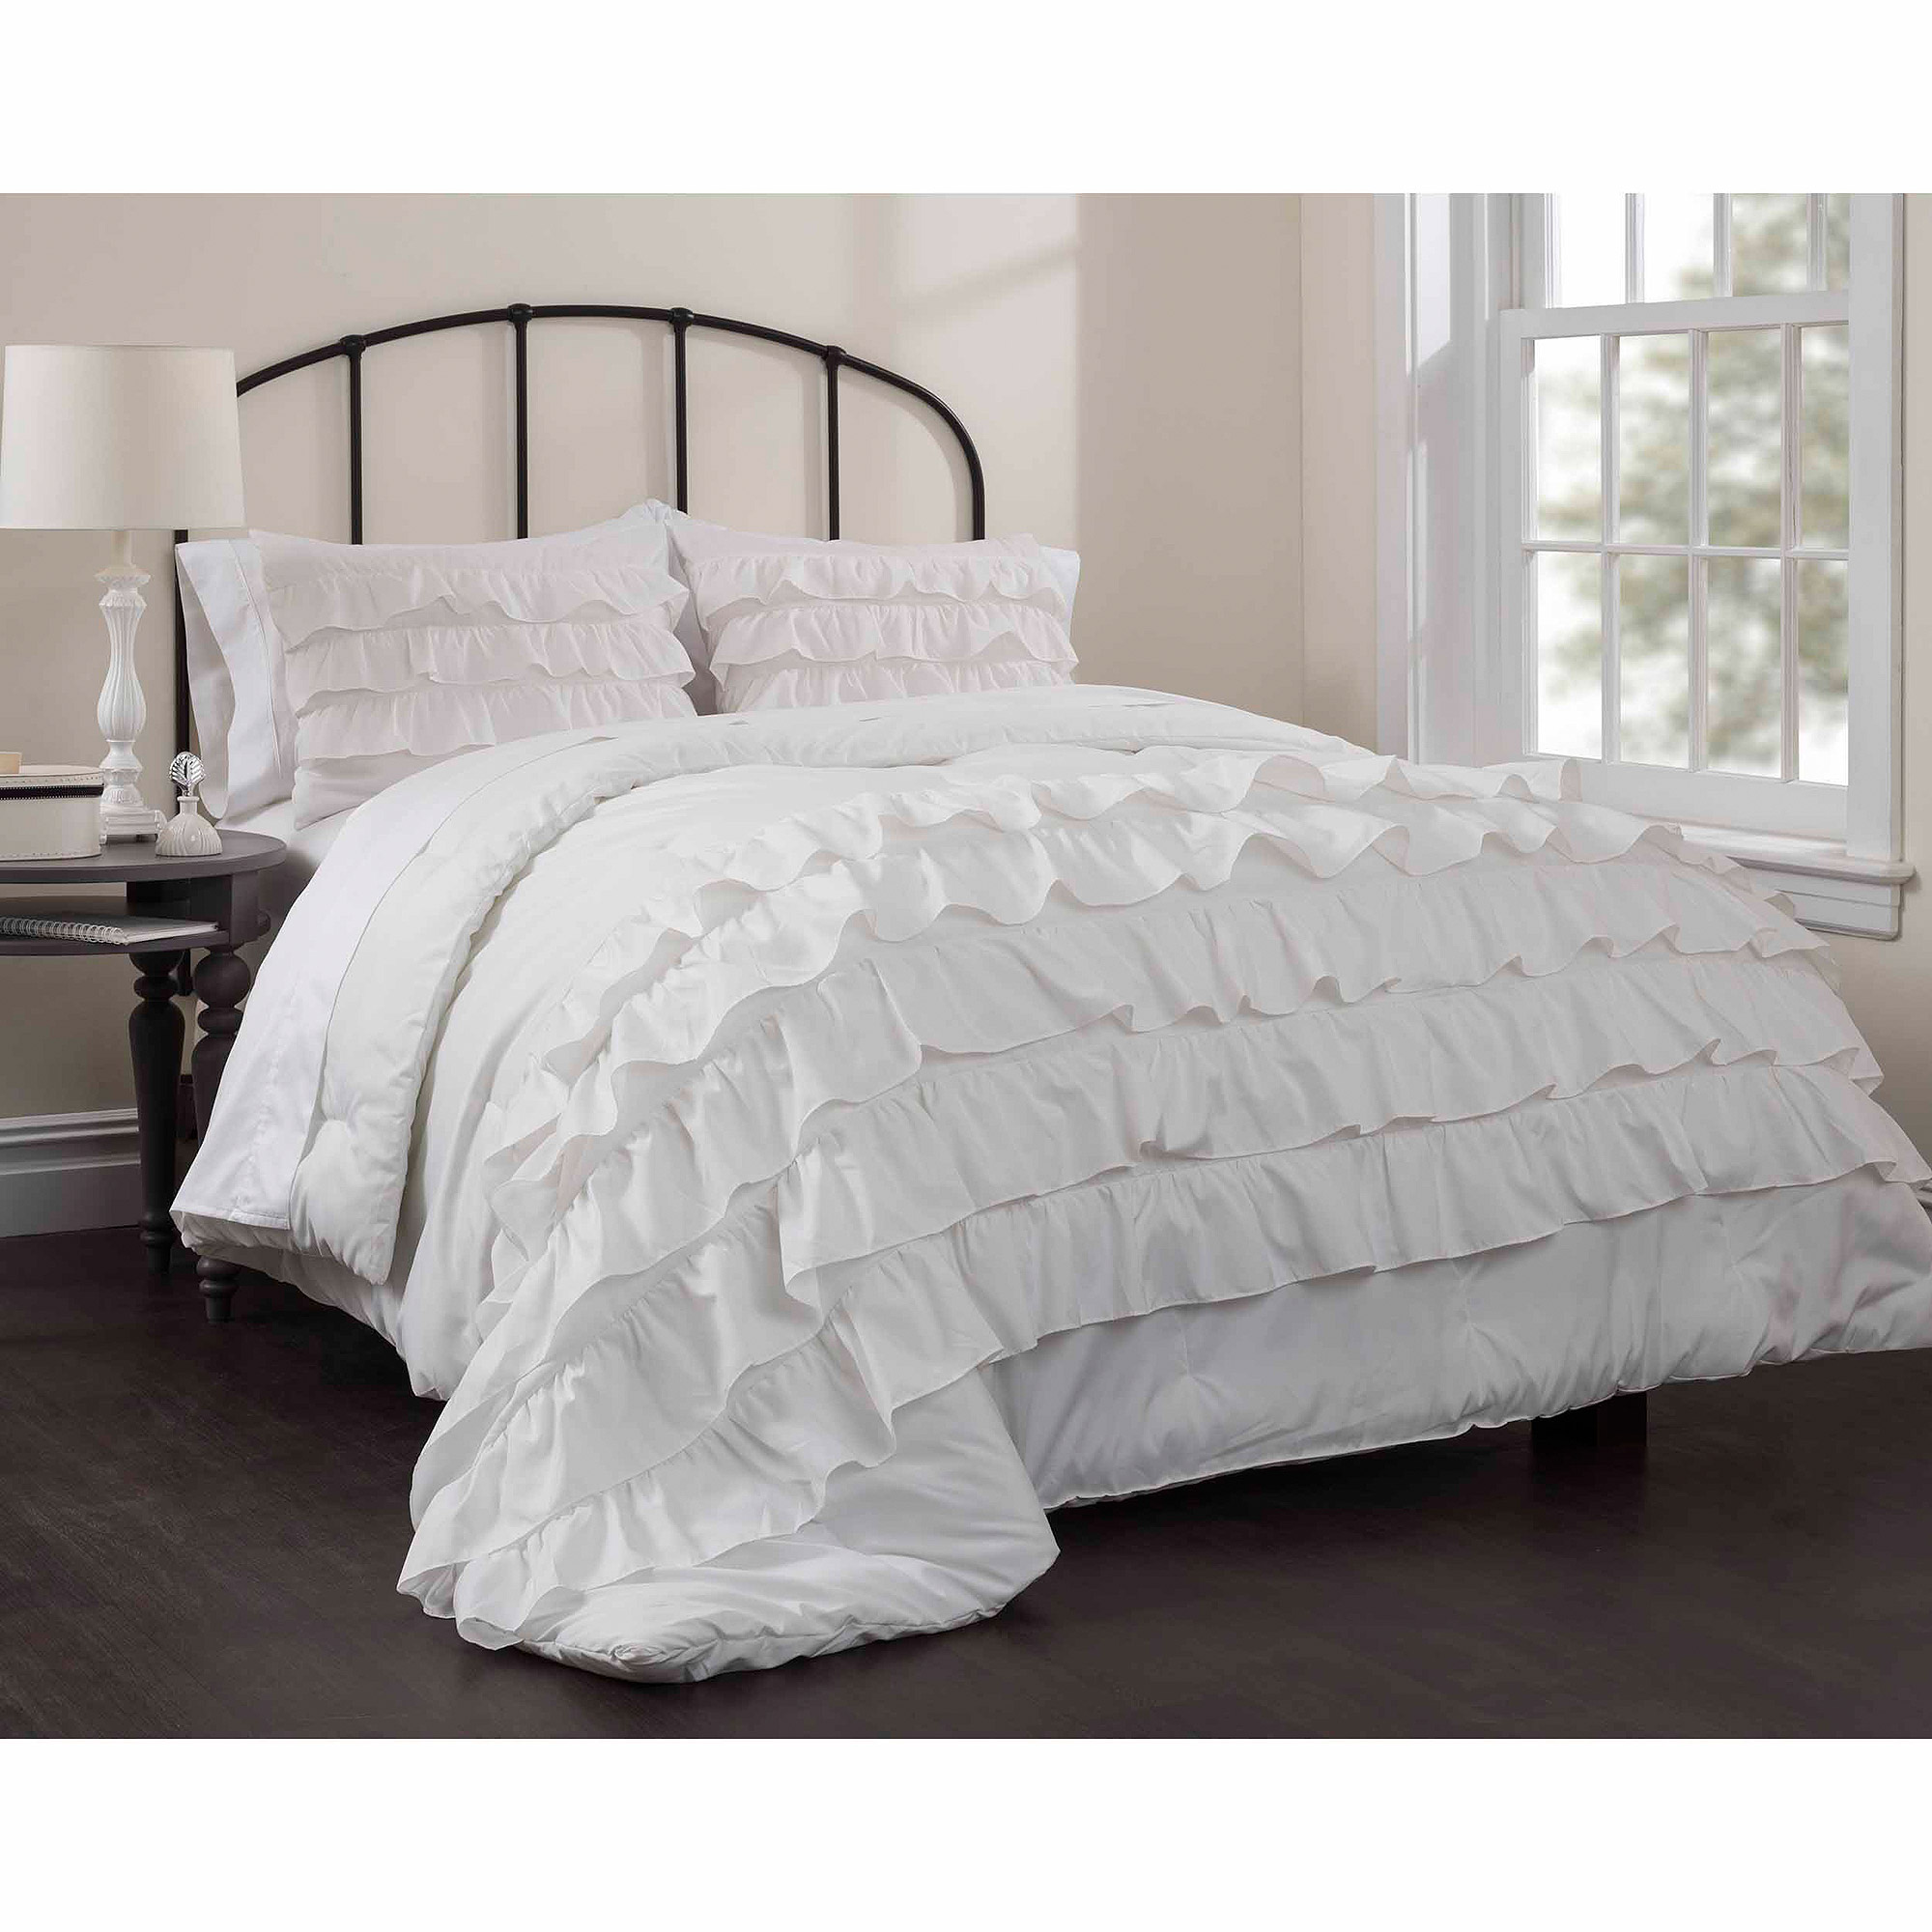 Black and white bedding walmart - Black And White Bedding Walmart 20